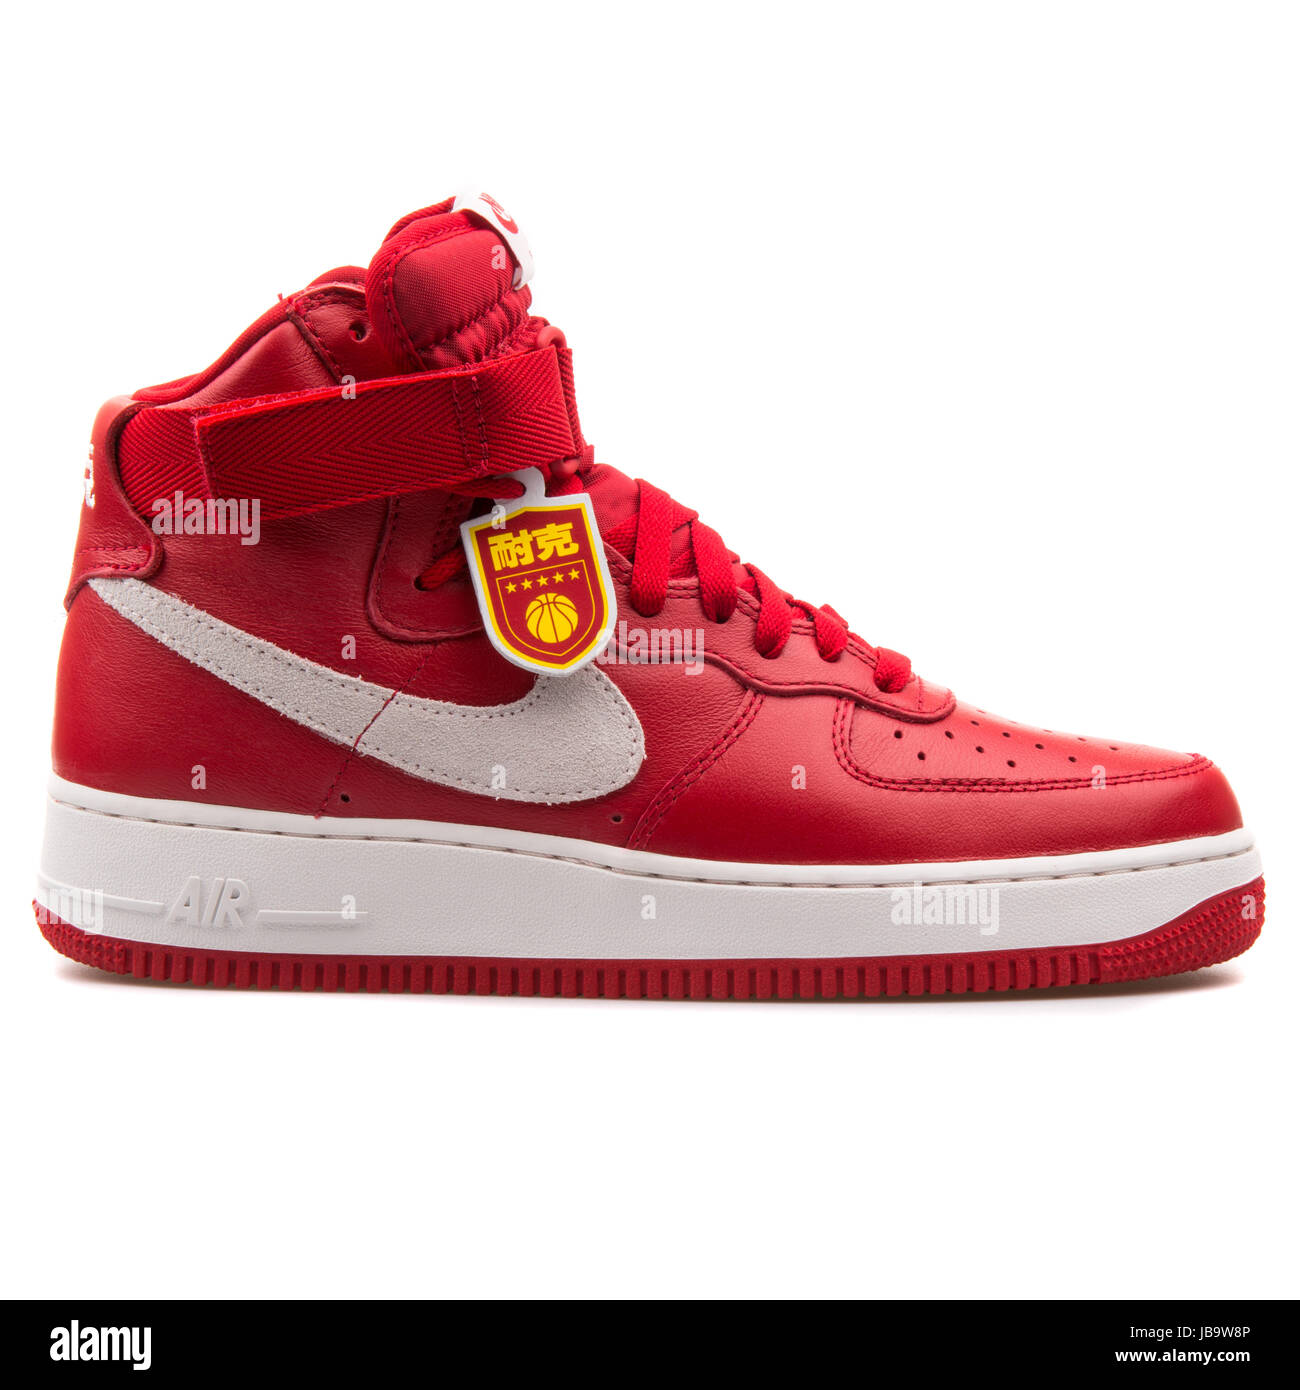 nike air force 1 retro red